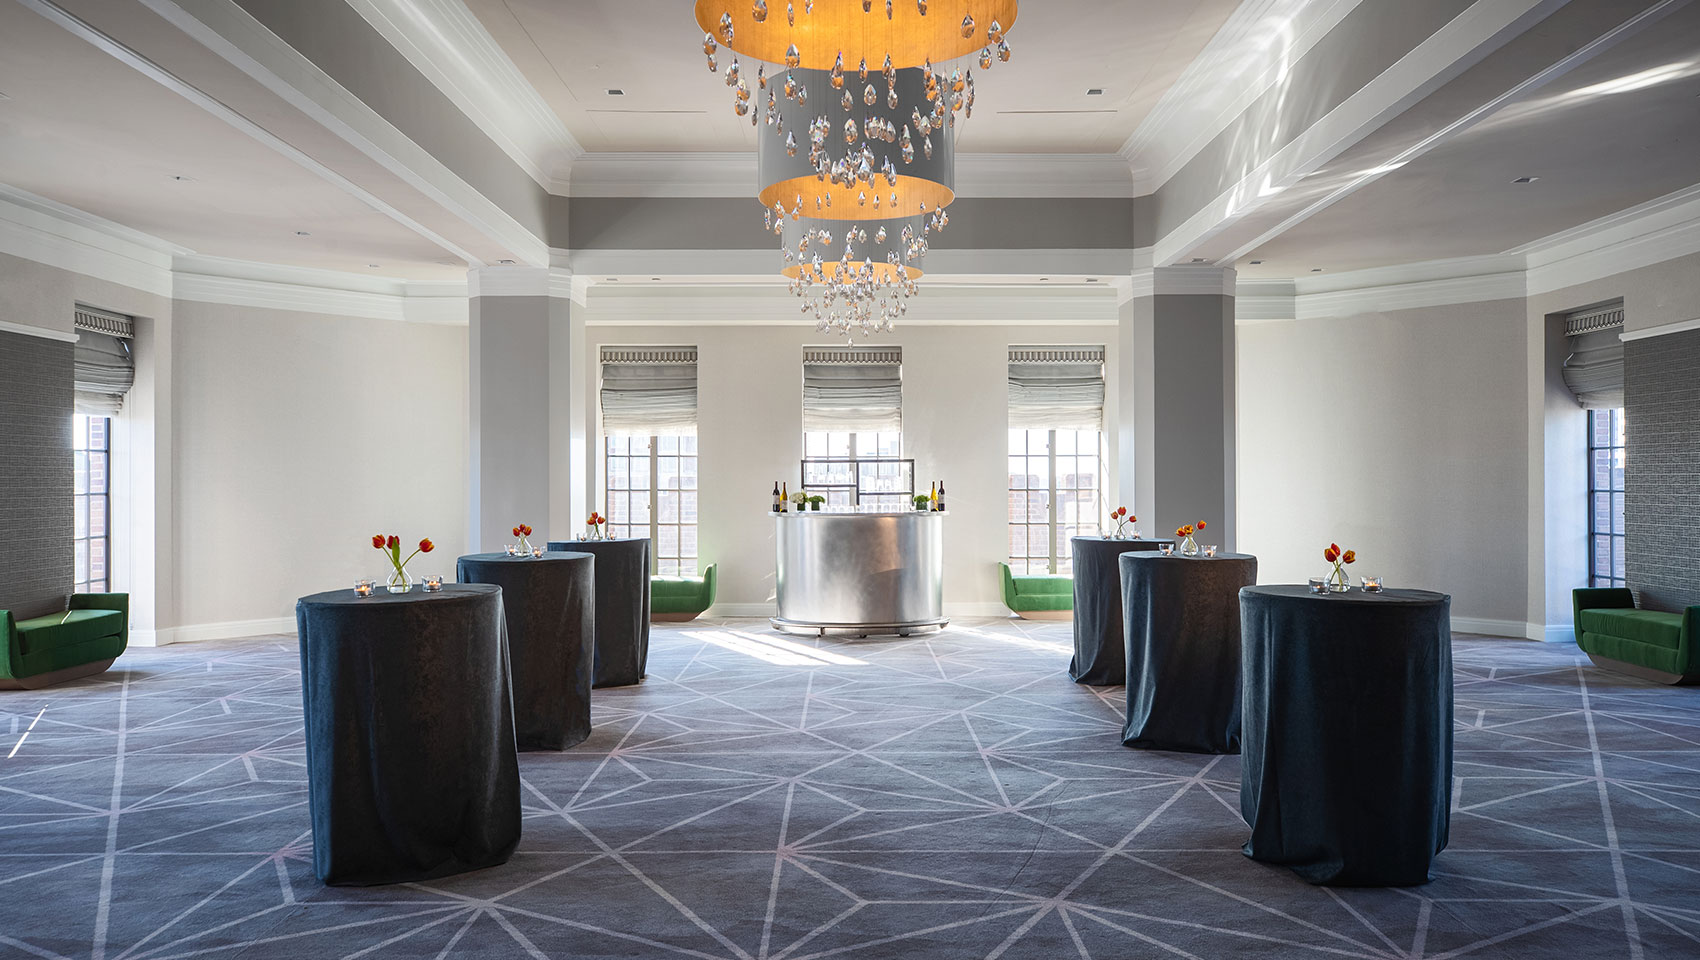 Ballroom social reception set up at Kimpton Hotel Palomar Philadelphia with cocktail tables throughout open area underneath circular chandeliers in the center of the room